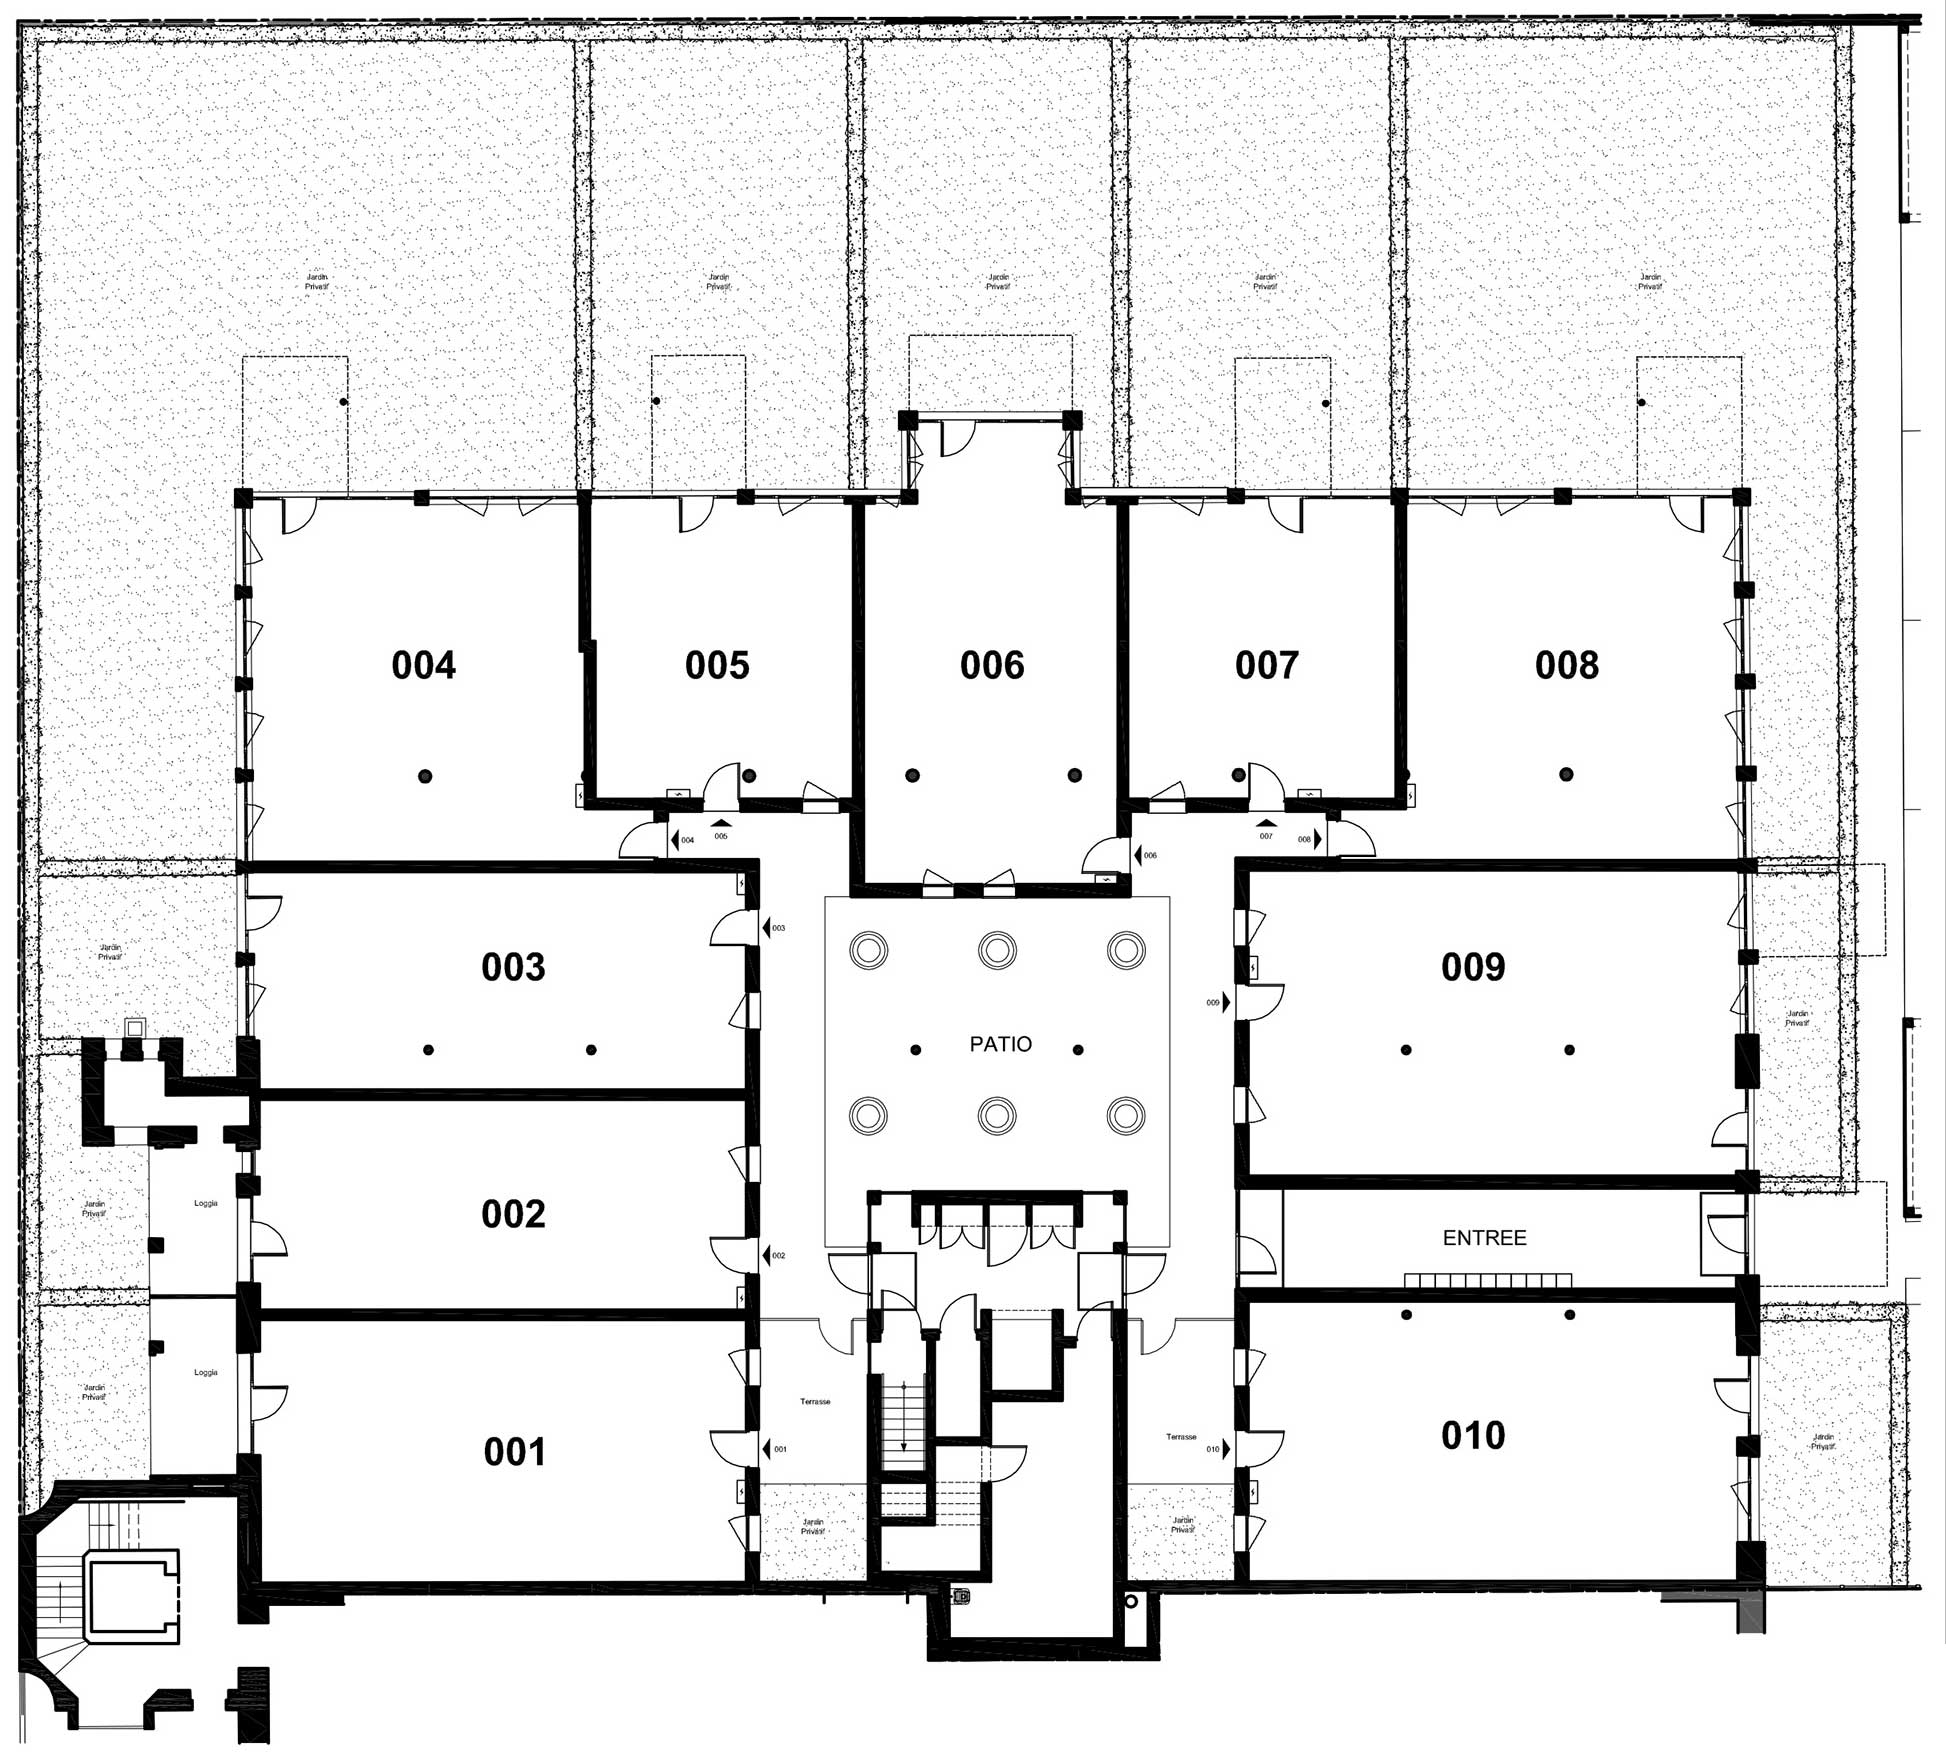 Plan des lofts lille for Plan de loft